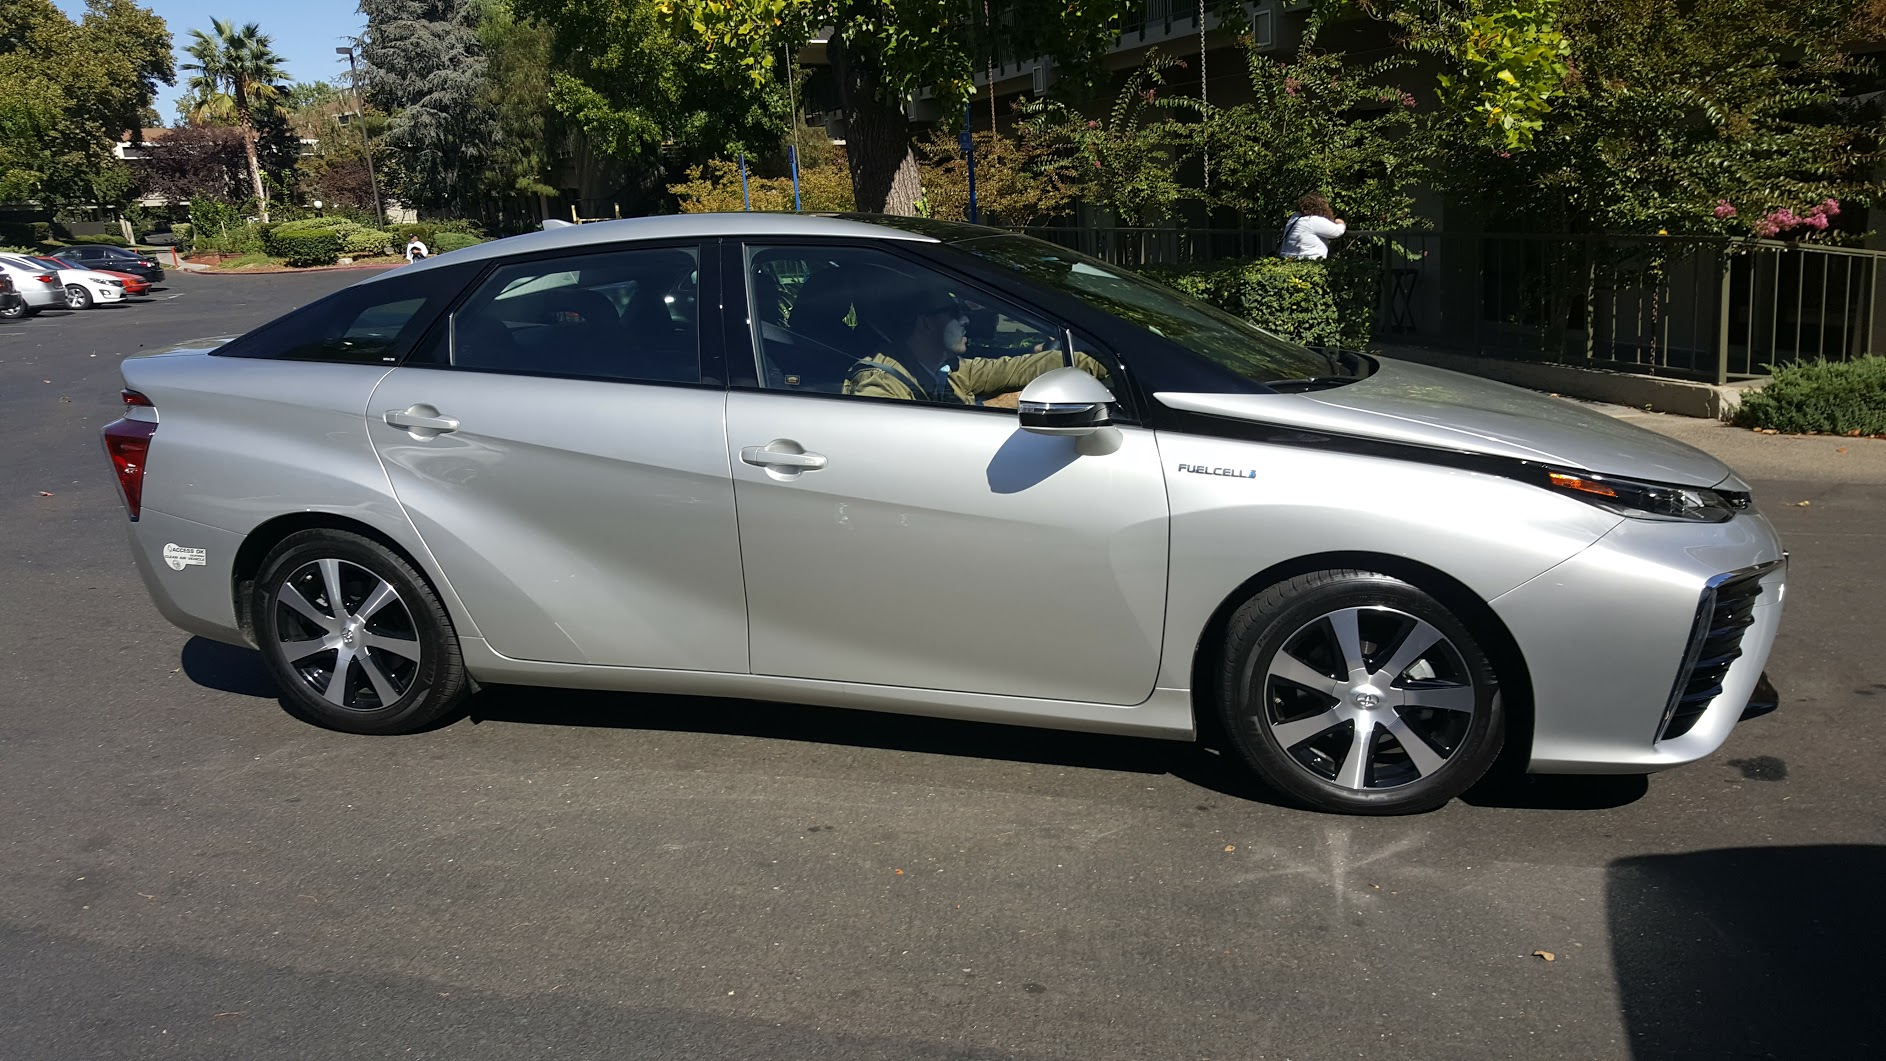 The 2016 Toyota Mirai used for the Ride and Drive at the SEJ Conference.